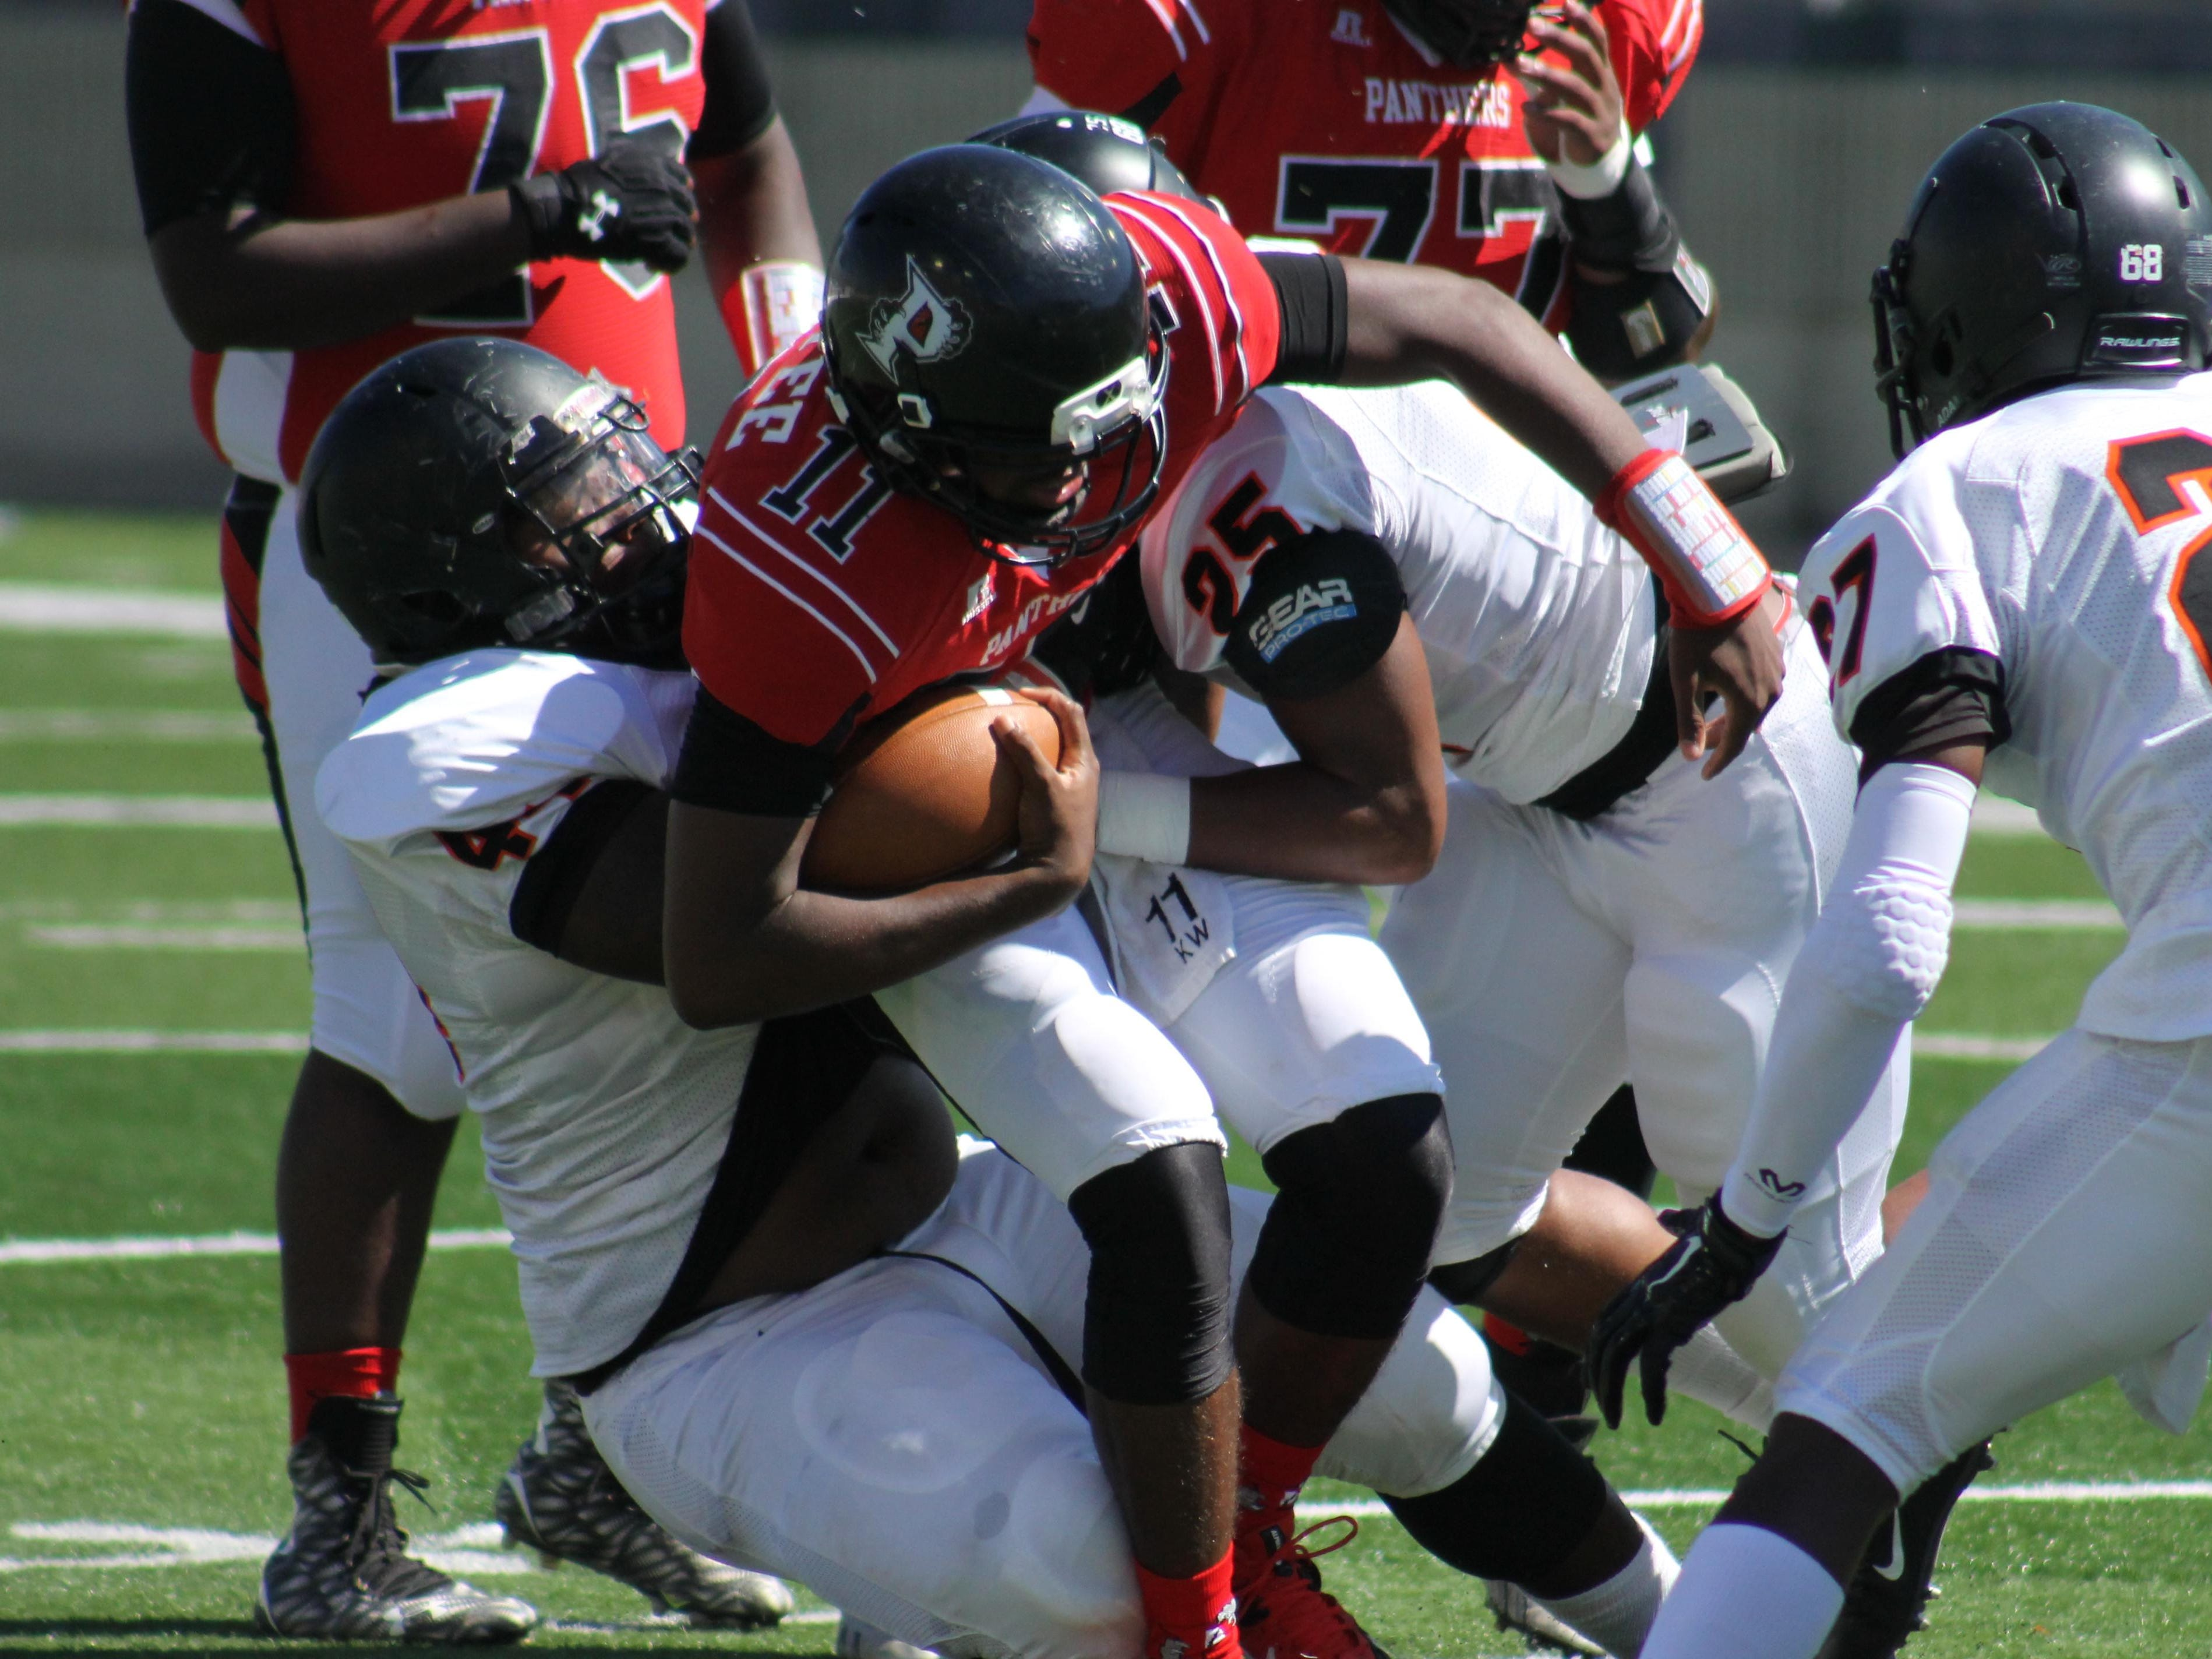 Parkway's Keondre Wudtee fights for yards against Gladewater Saturday at Independence Stadium.